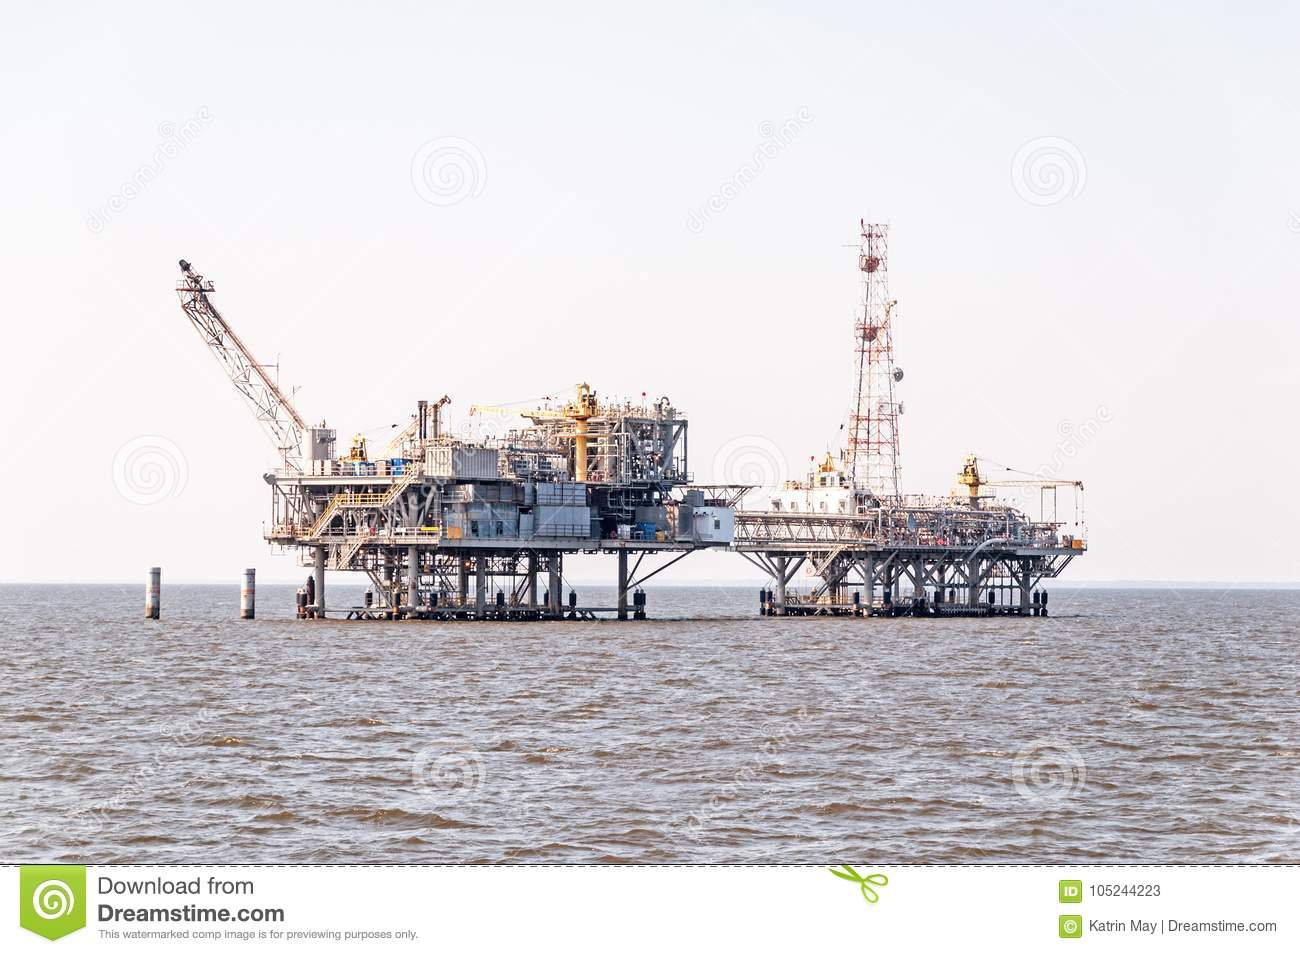 Two oil rigs under construction